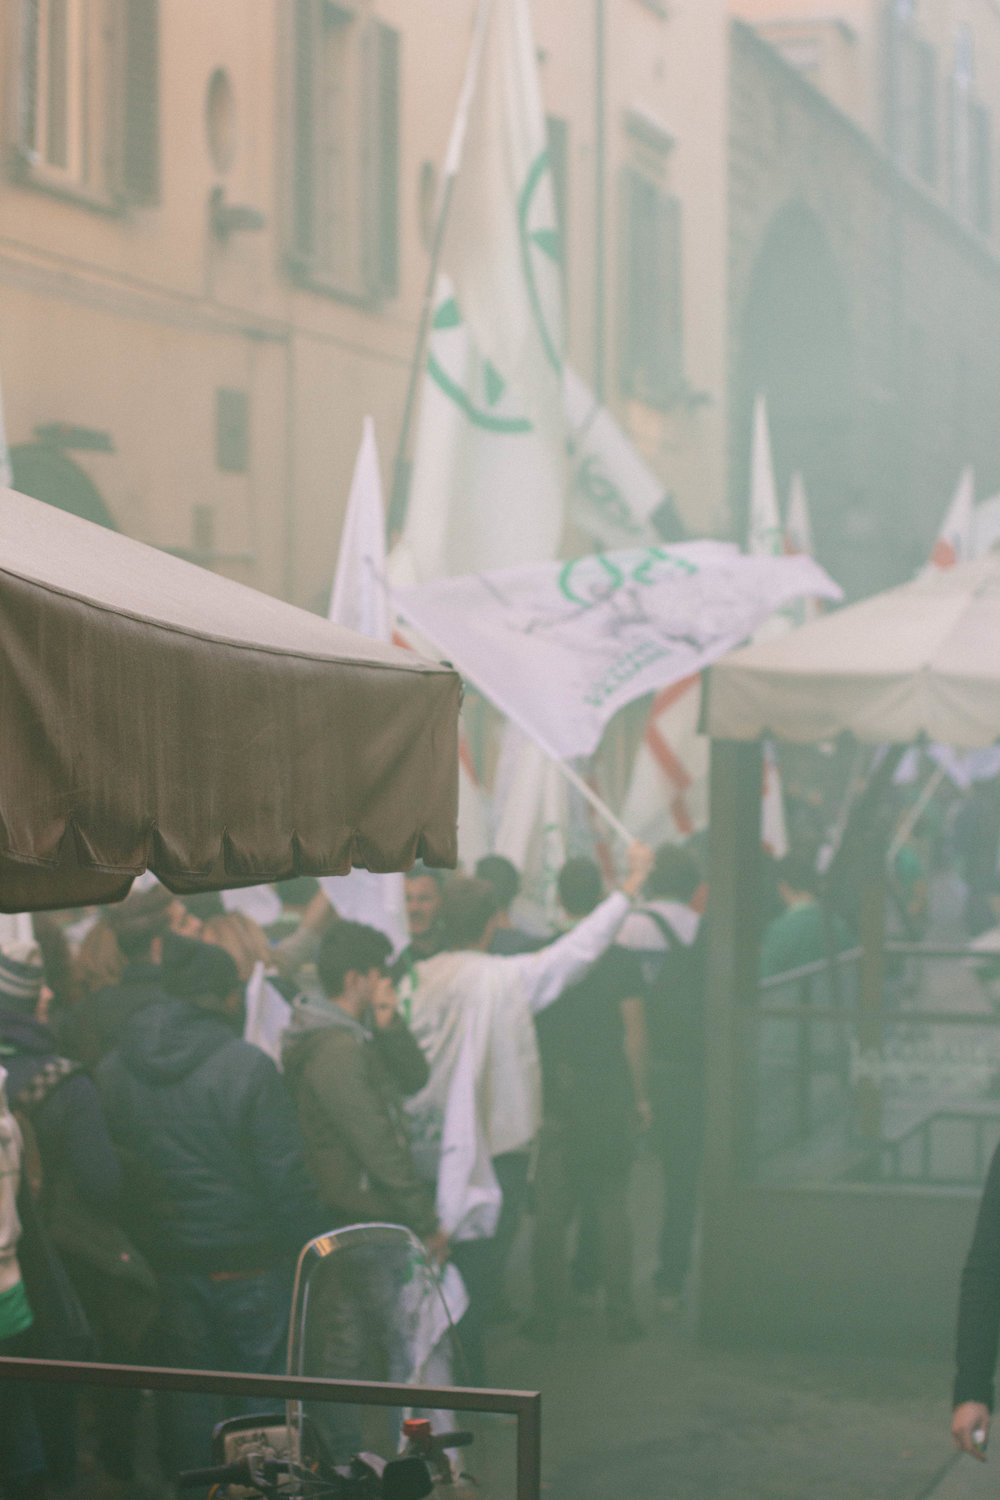 The group also brought a giant green smoke bomb that filled the street with green smoke.